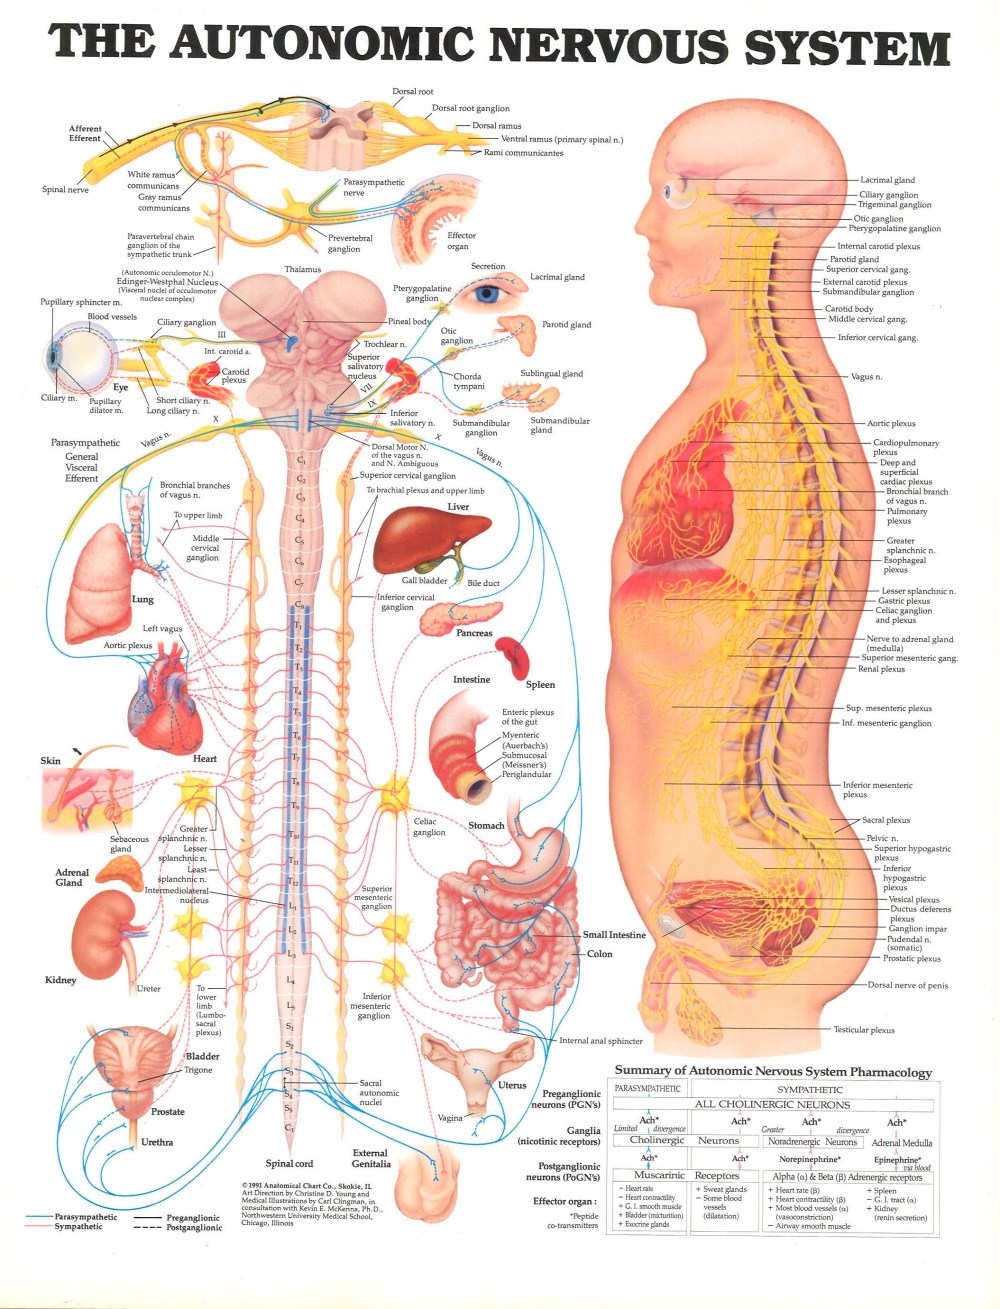 medium resolution of 1991 anatomical chart co skokie il art direction by christine d